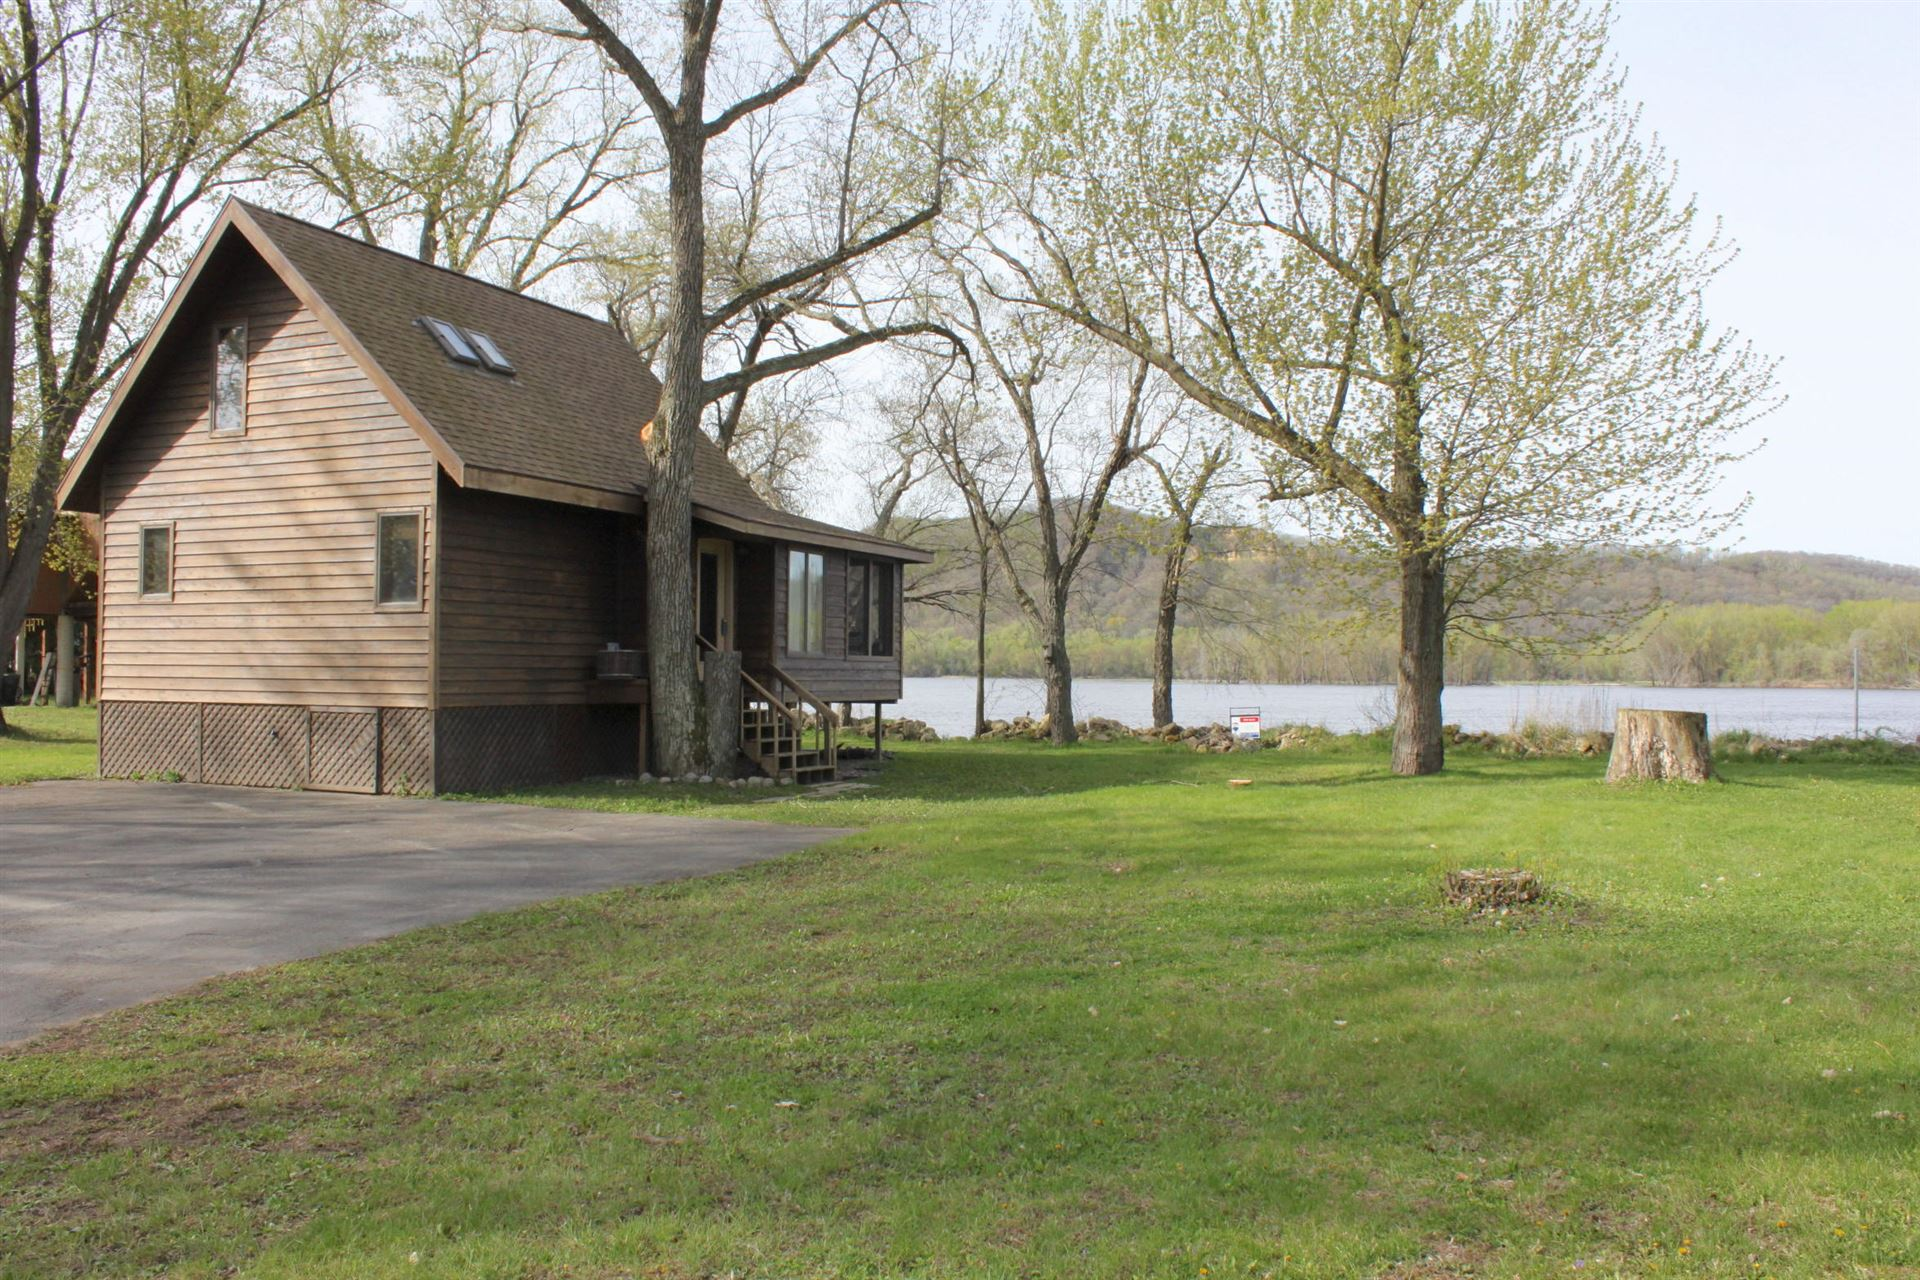 23769 Lake Rd, Trempealeau, WI 54661 - MLS#: 1687279